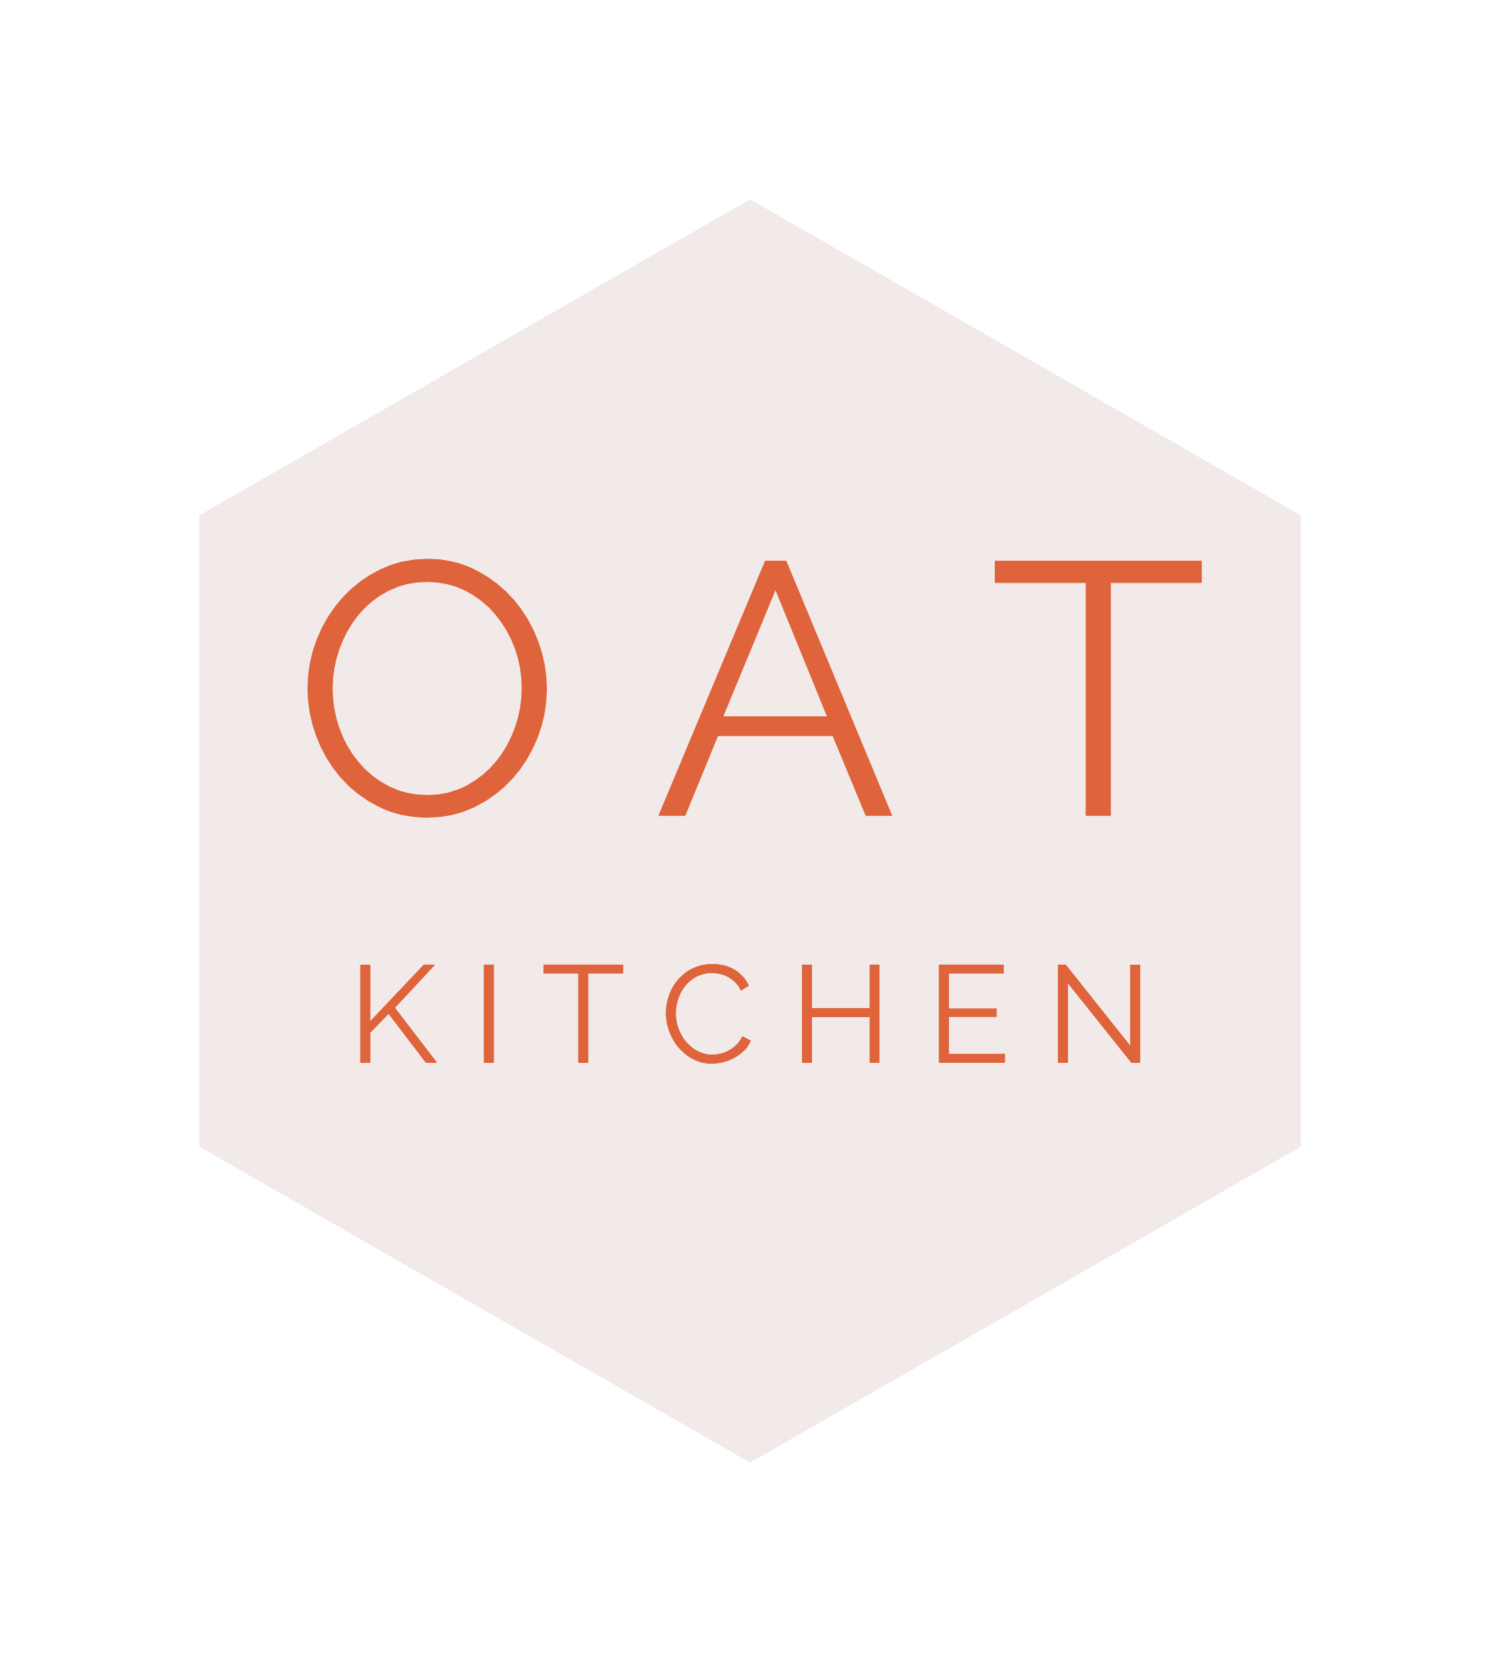 OAT KITCHEN